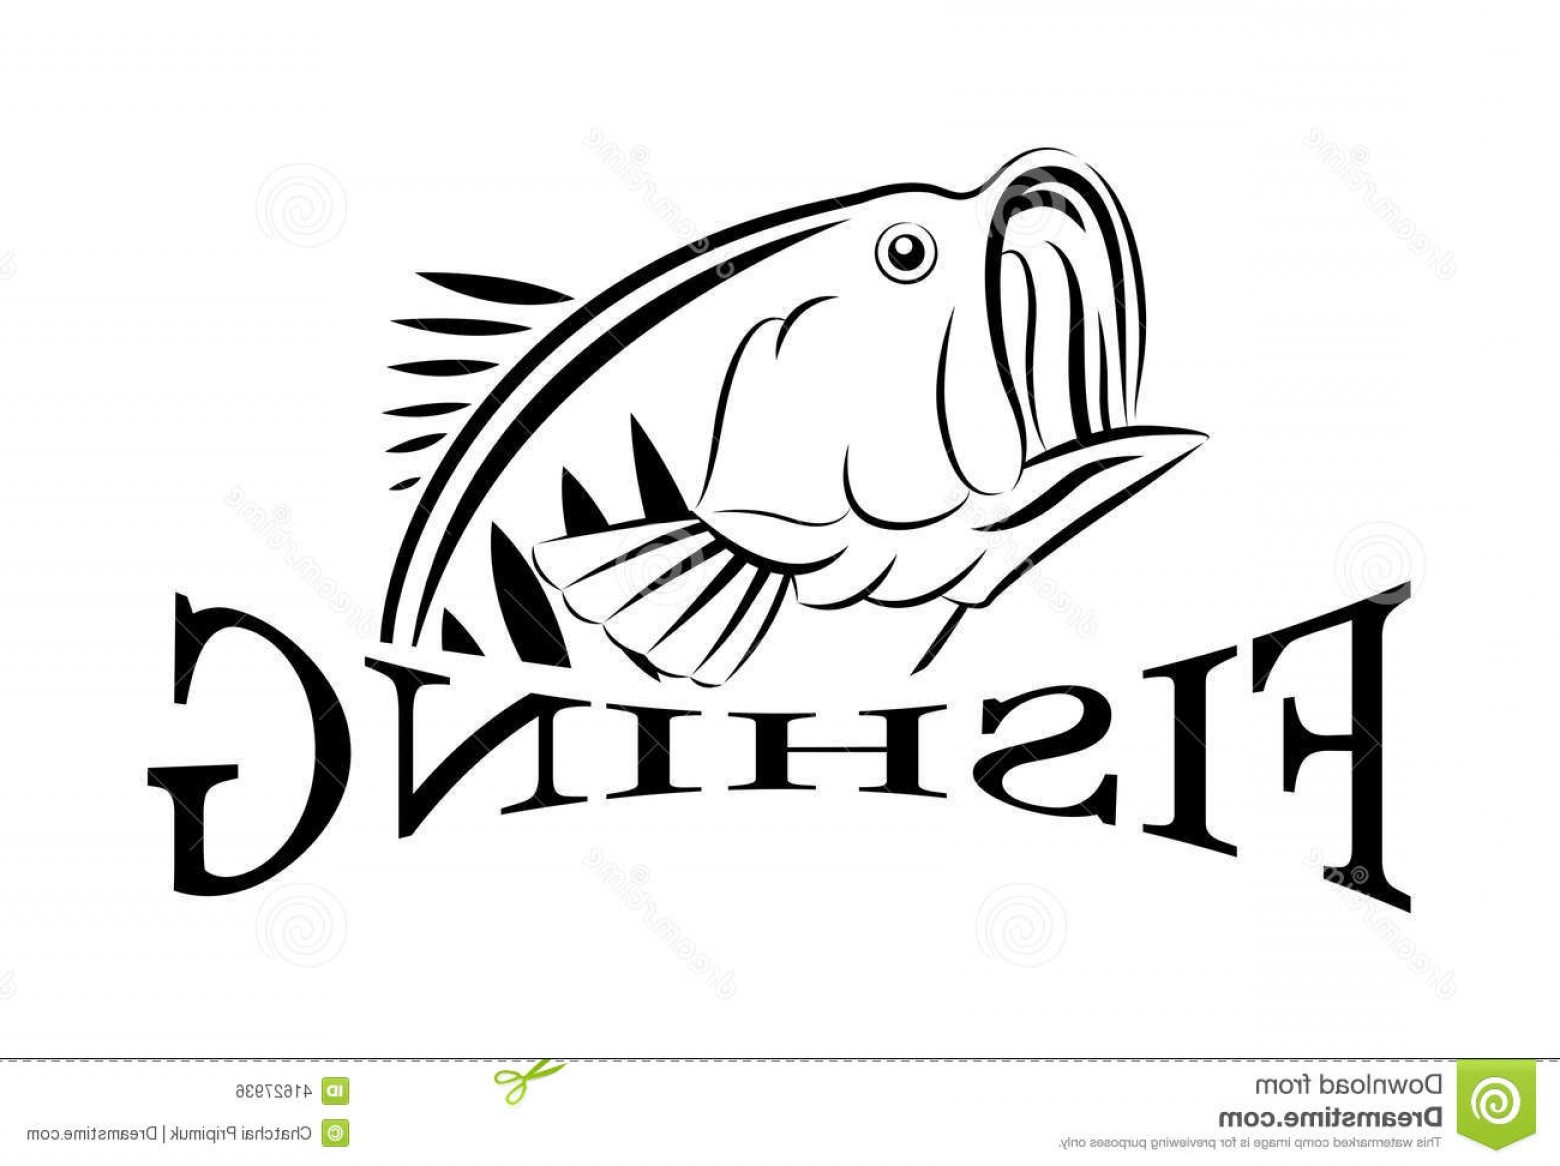 Fish Vector Graphic: Stock Illustration Vector Fishing Design Illustration Symbol Sport Graphic Image